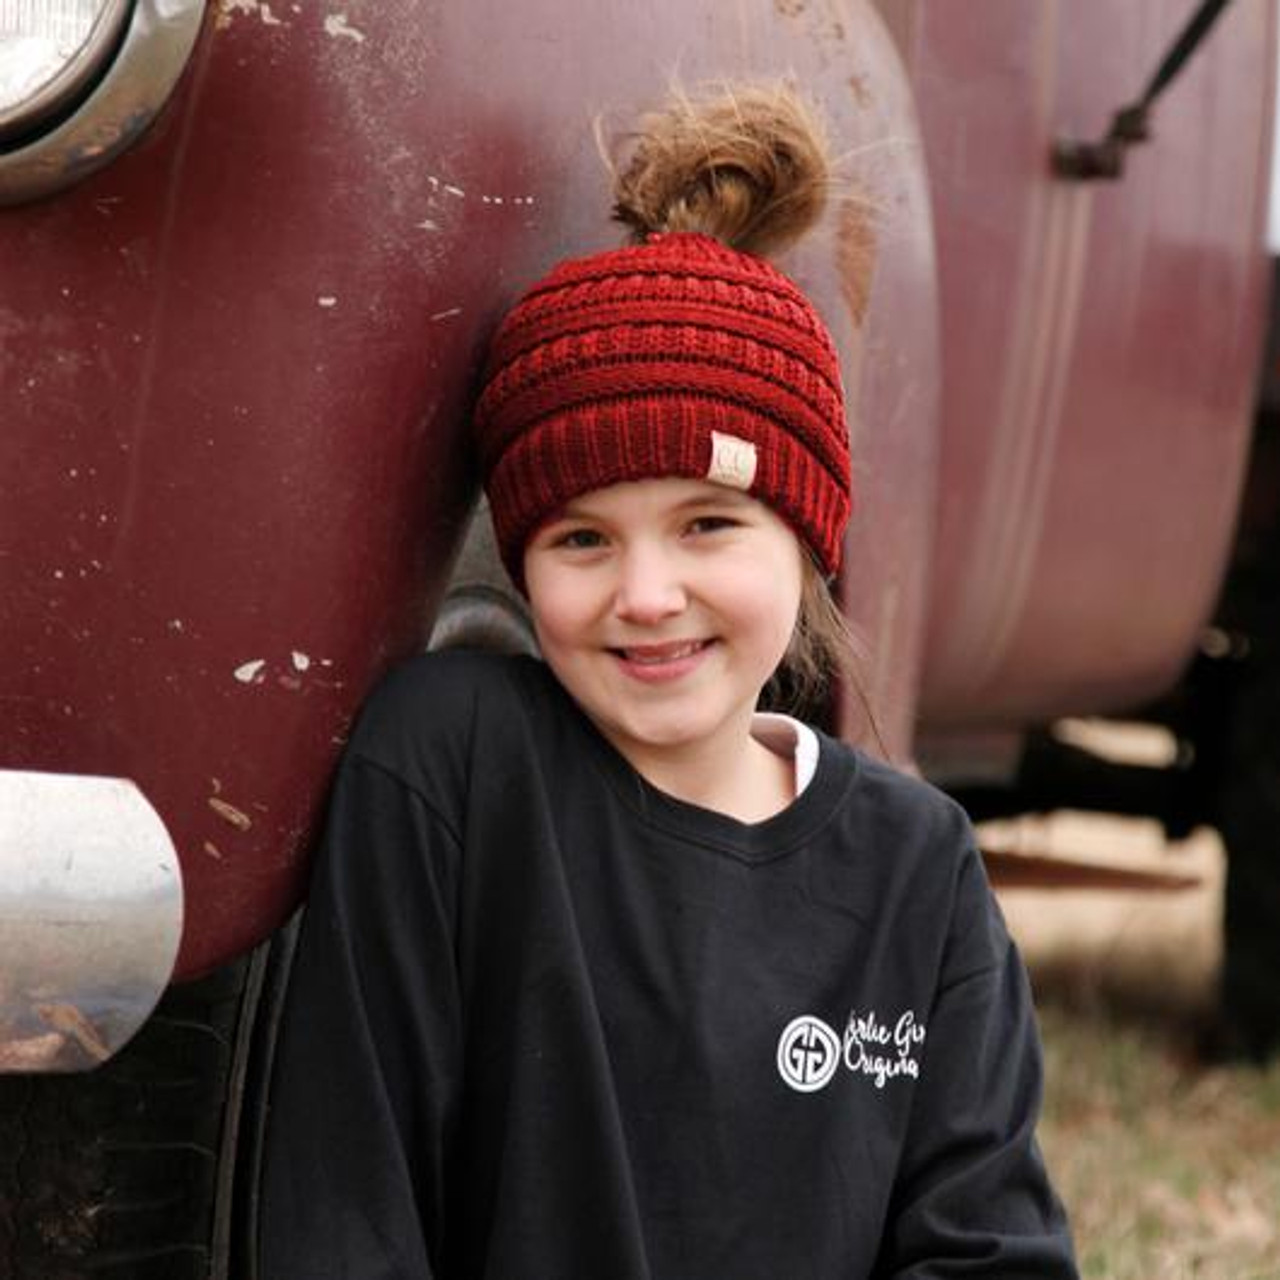 246a6d93895bb C.C. Youth Messy Bun Red Beanie - Girls Round Here